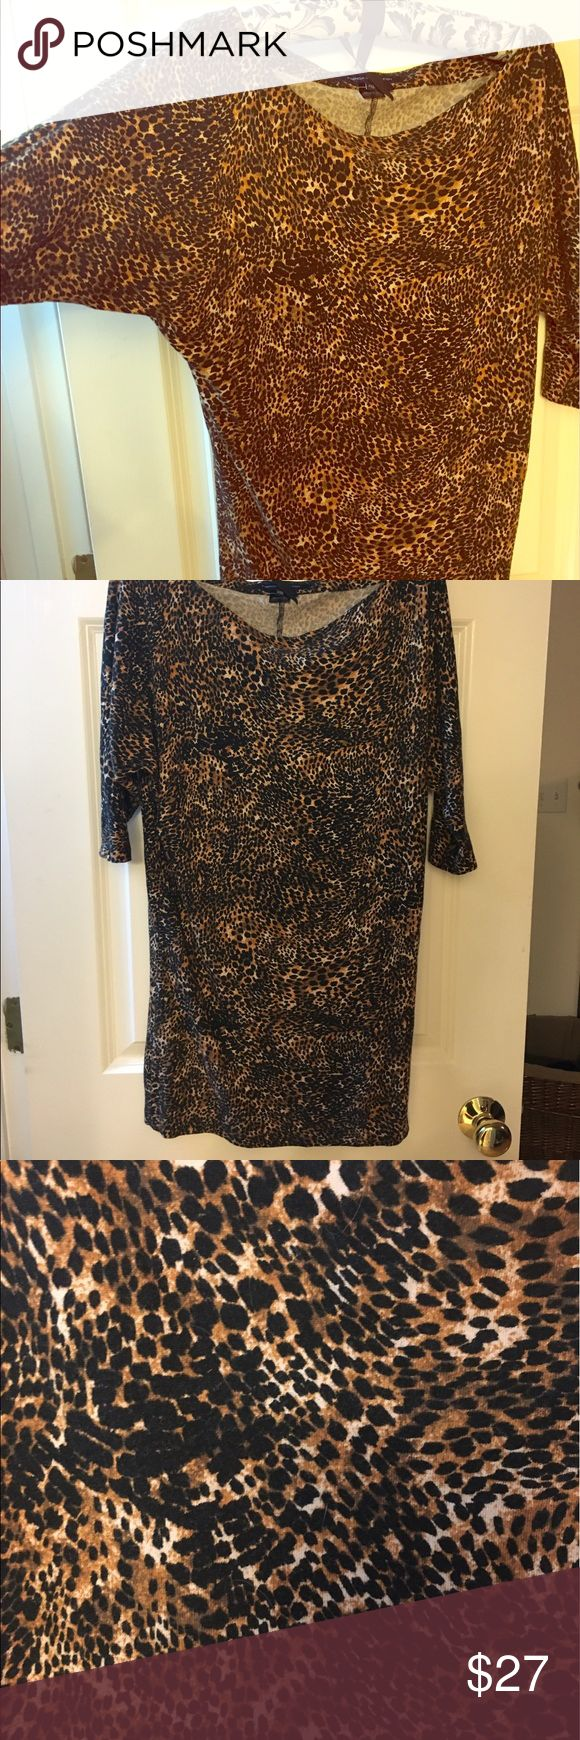 French connection leopard dolman sleeve tunic XS Awesome leopard French connection dolman sleeve tunic.  Great with leggings French Connection Tops Tunics